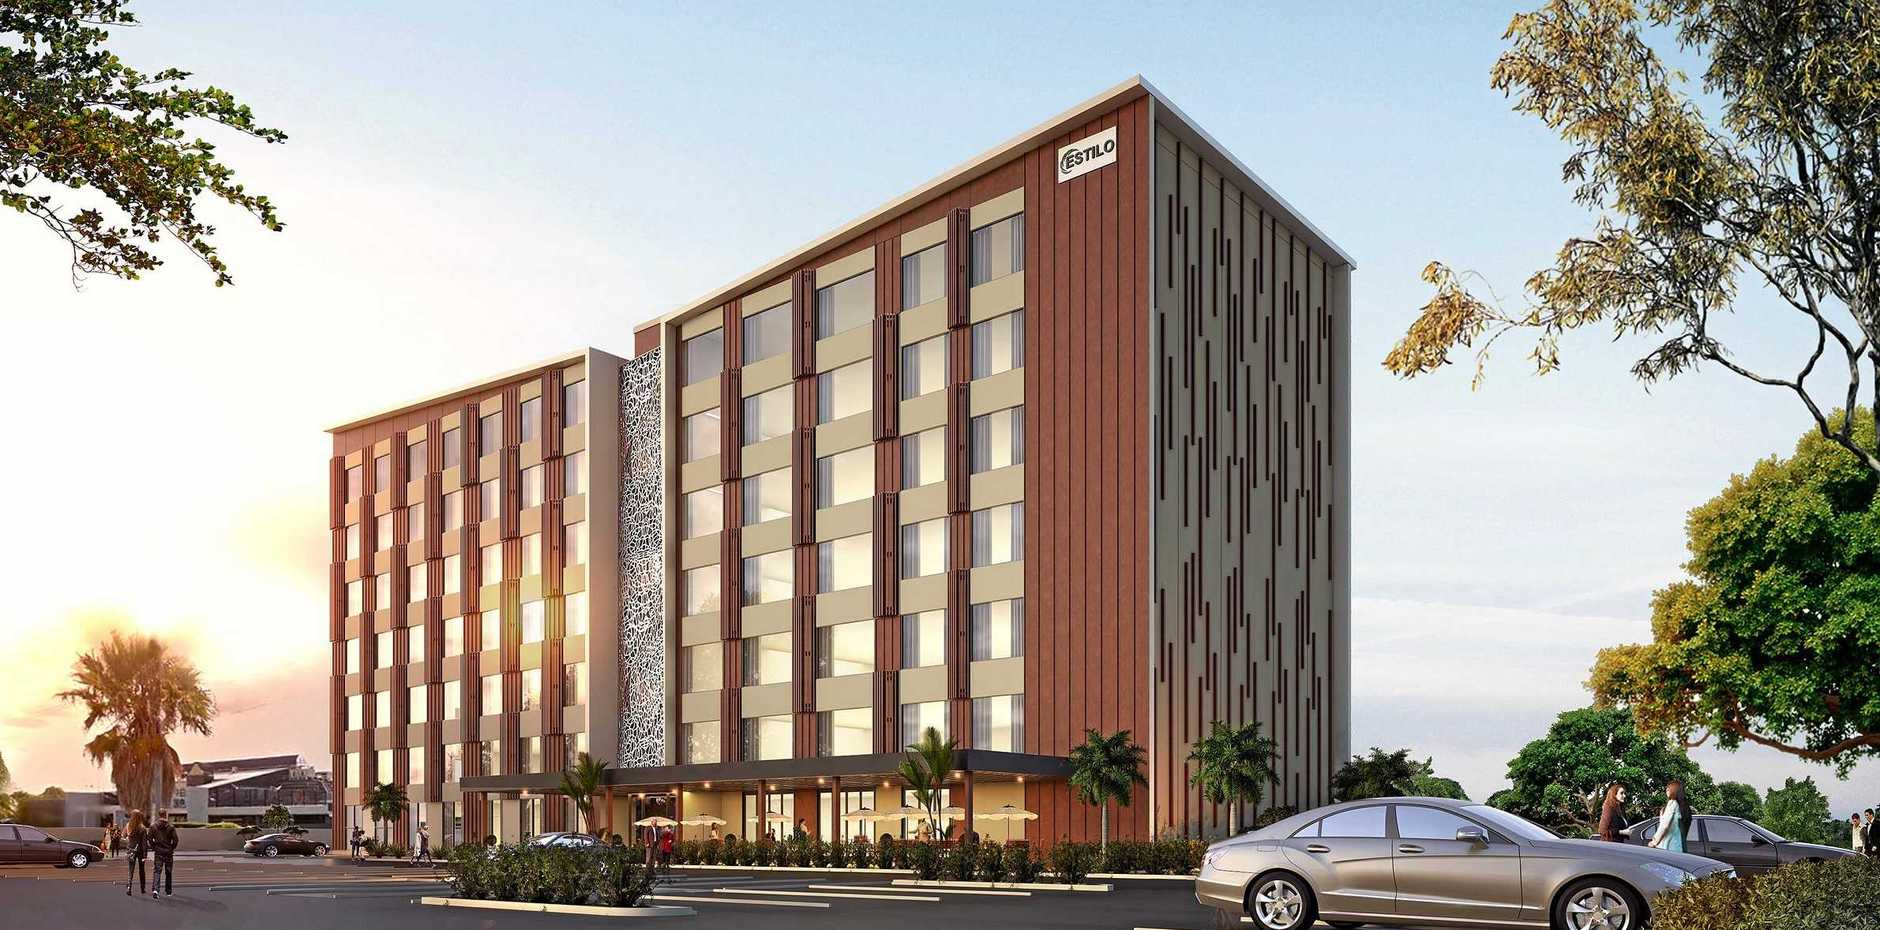 PLACE TO STAY: The new hotel planned near the airport.